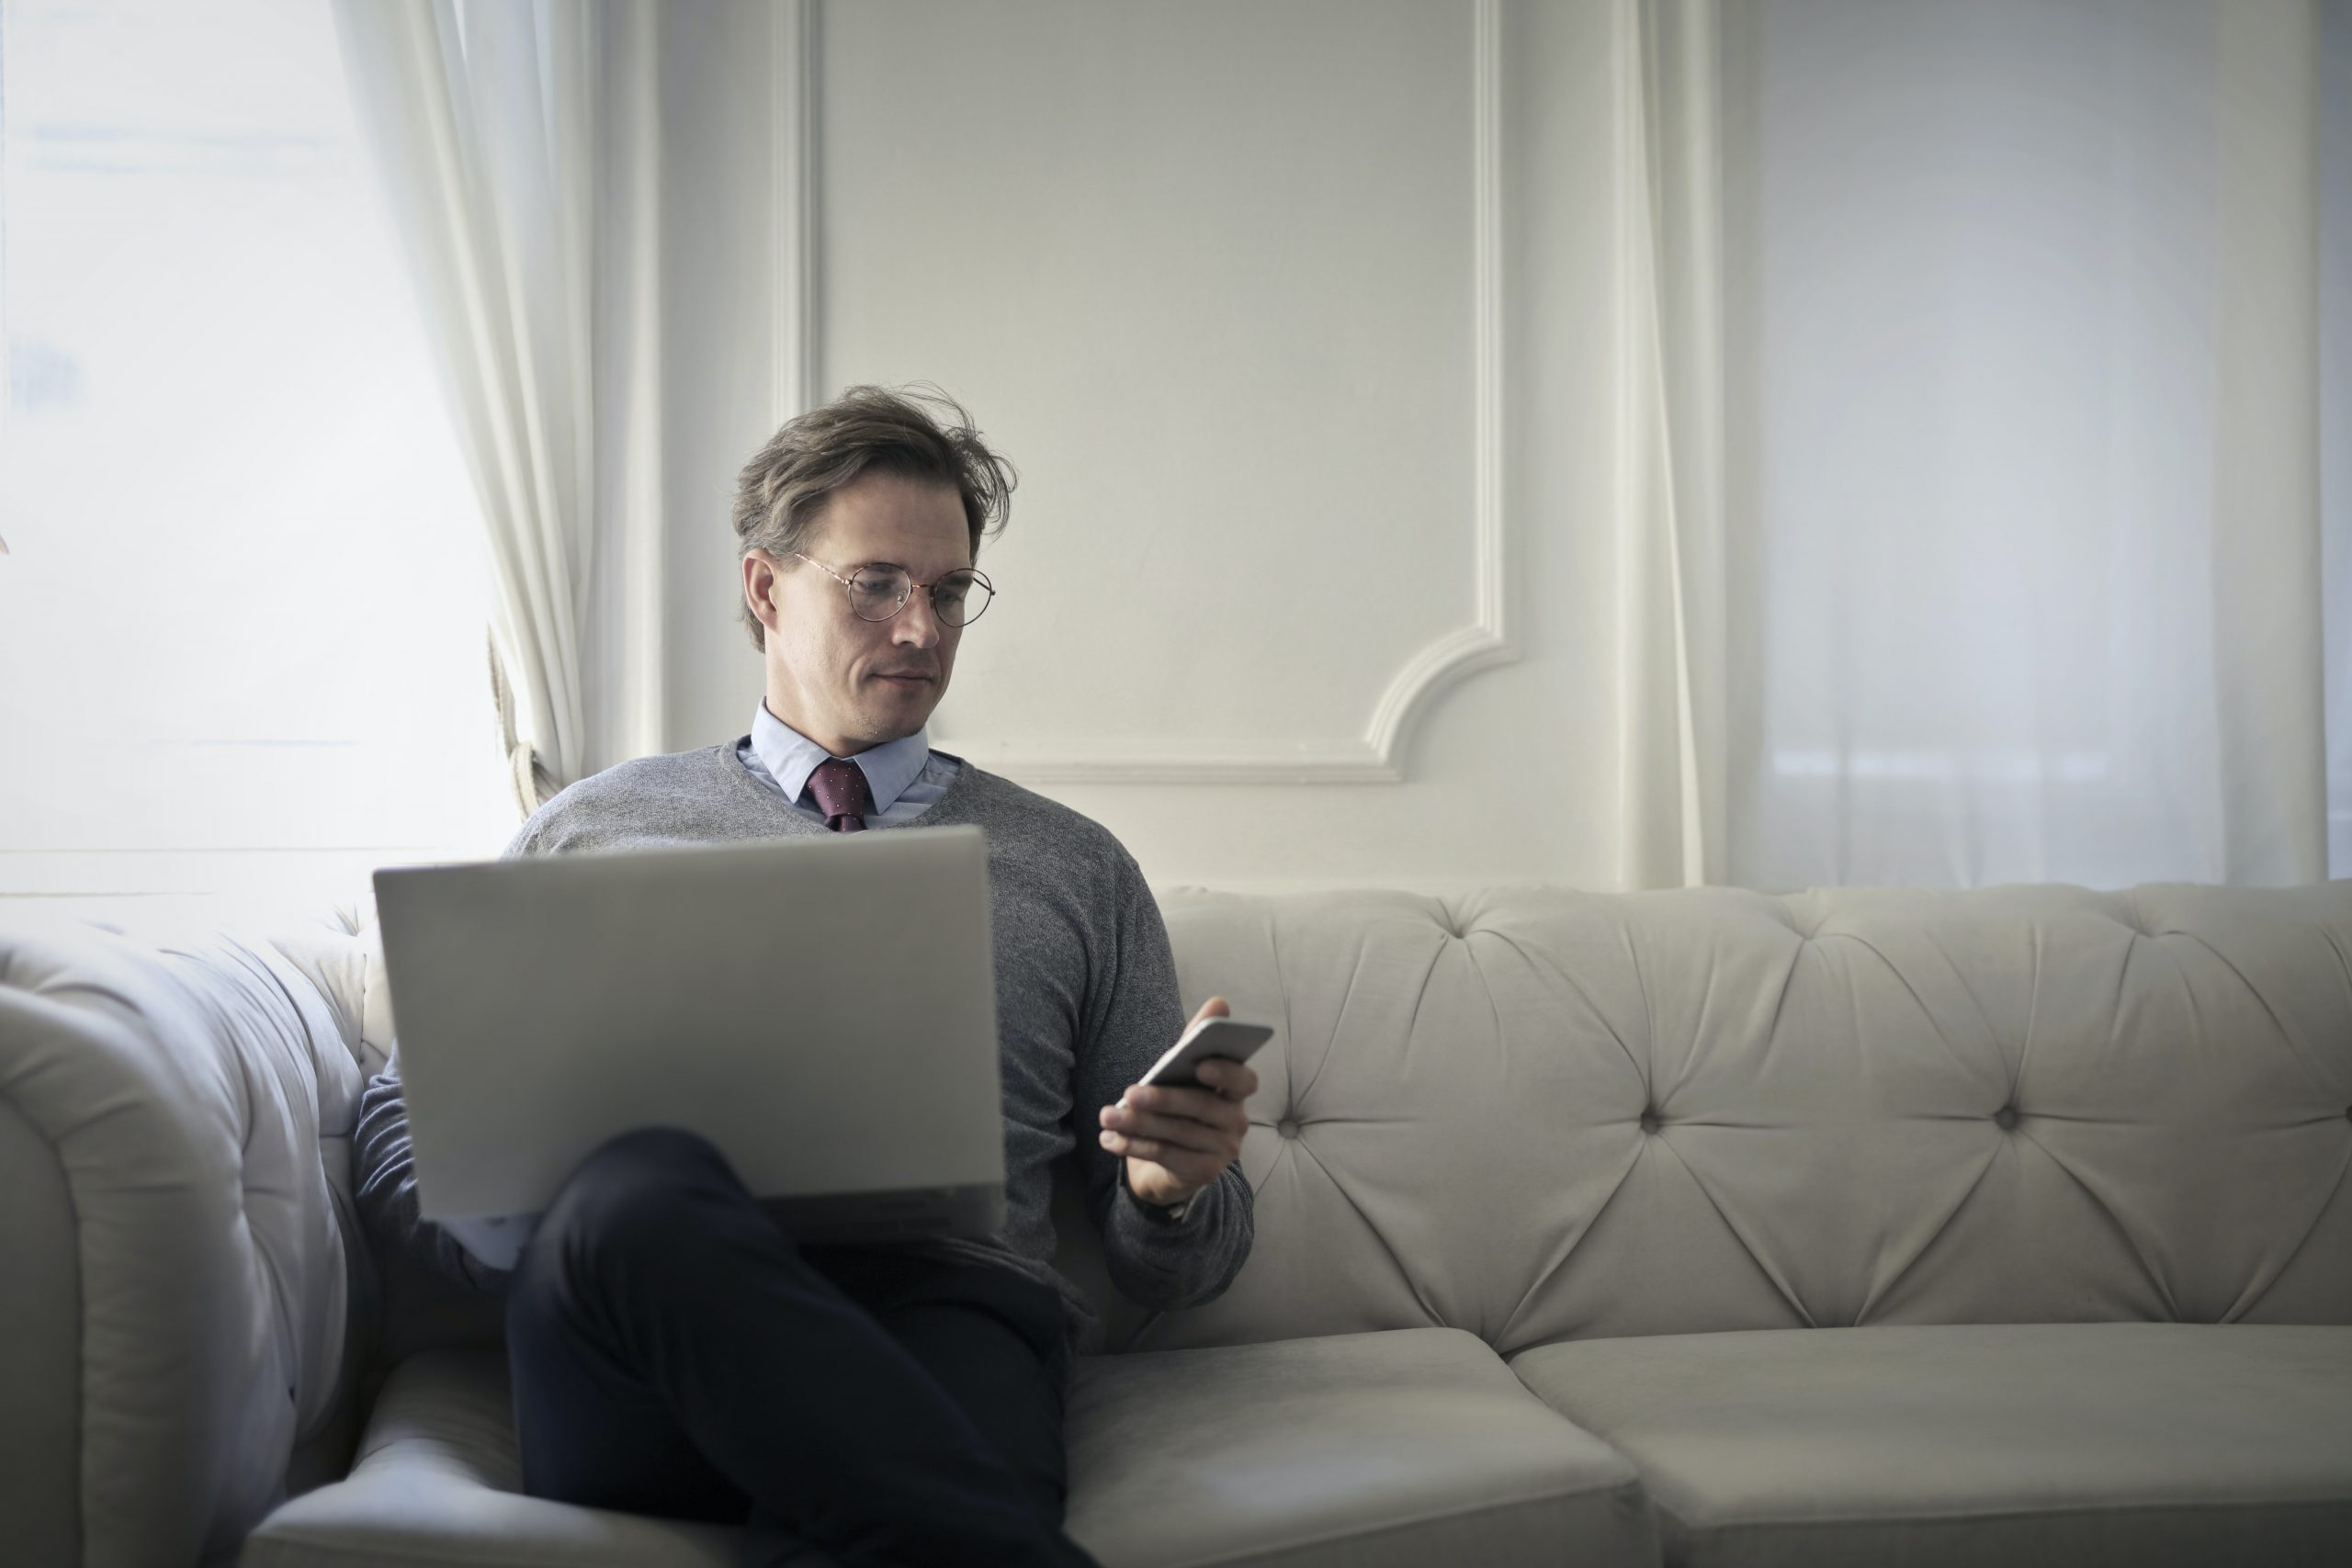 photo-of-a-man-using-laptop-and-cellular-phone-3771789-scaled.jpg